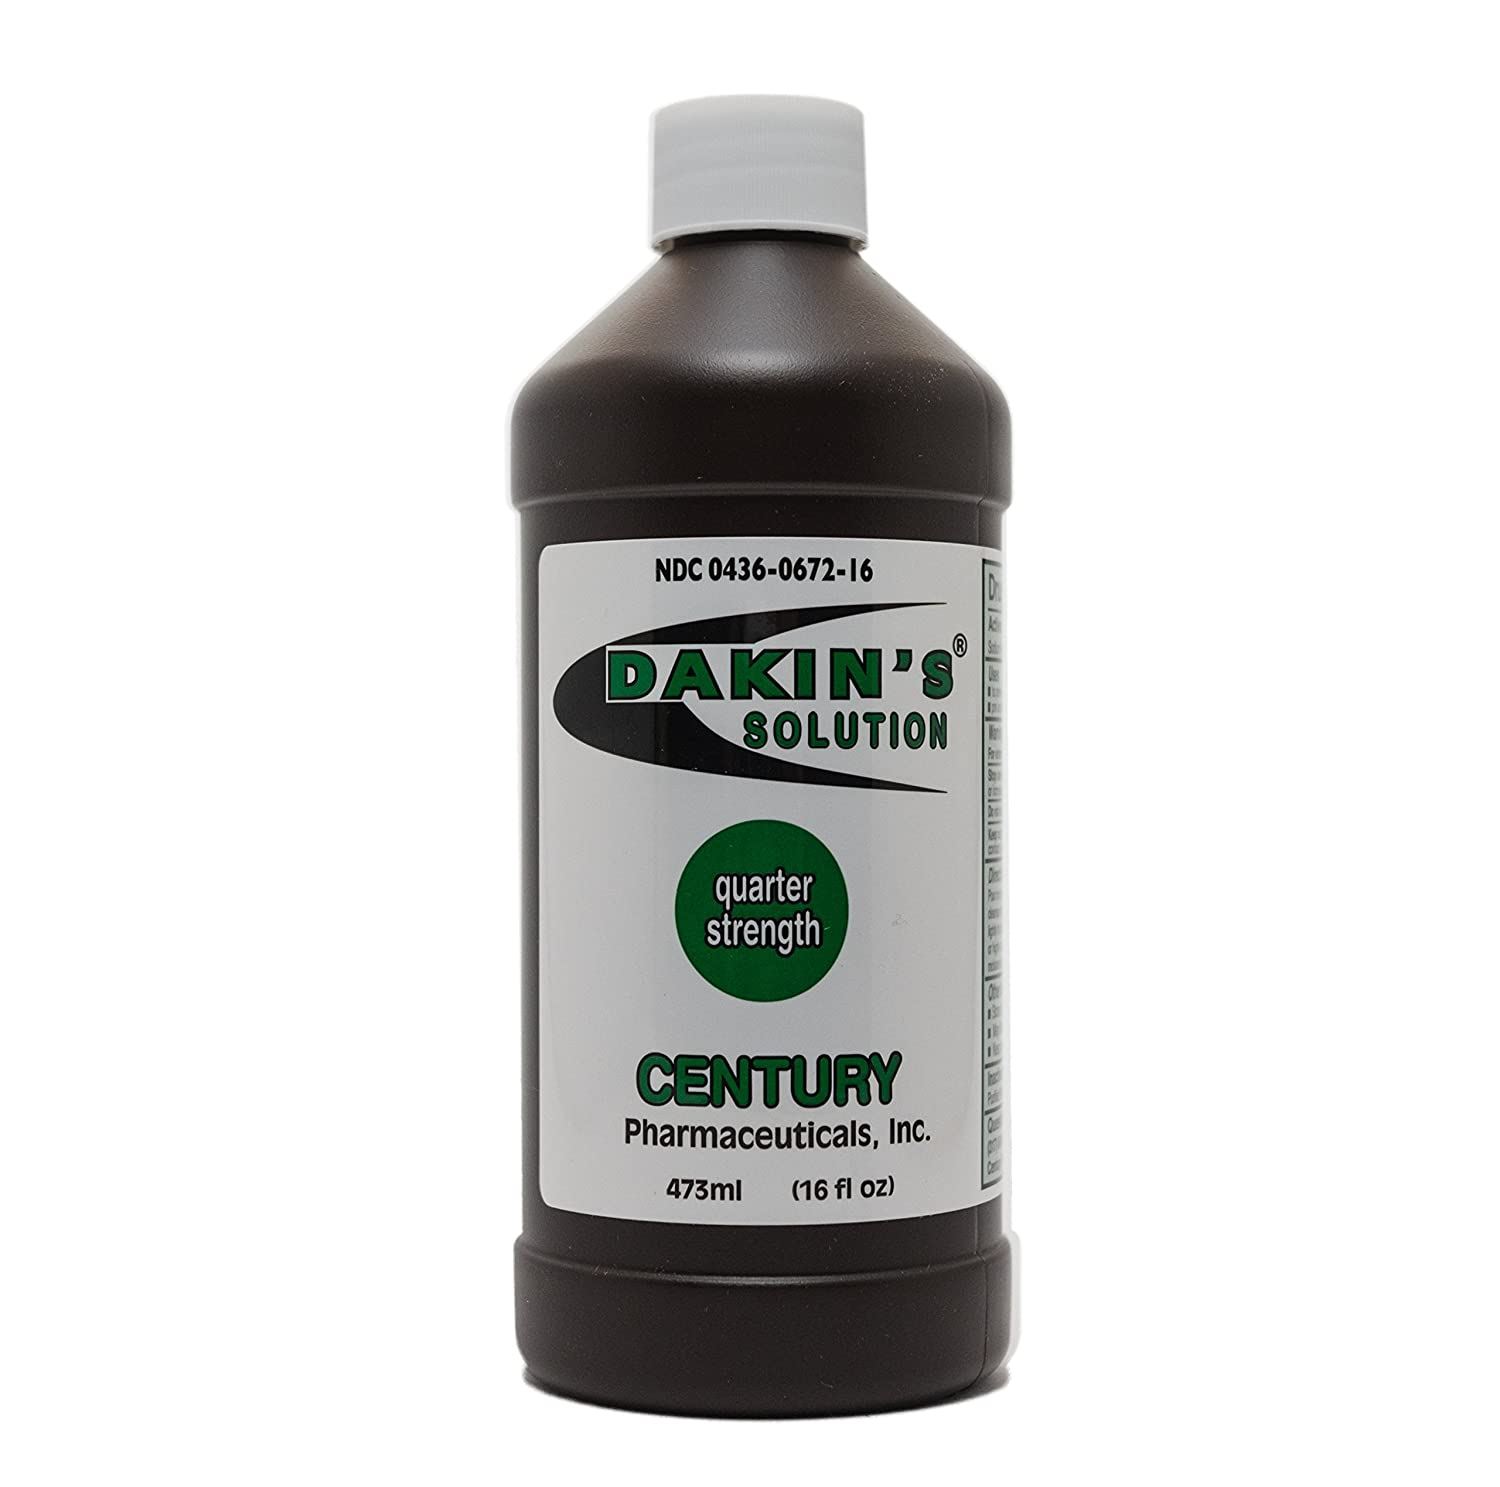 Dakin's Solution-Quarter Strength 304360672168 Sodium Hypochlorite 0.125% Wound Therapy for Acute and Chronic Wounds by Century Pharmaceuticals